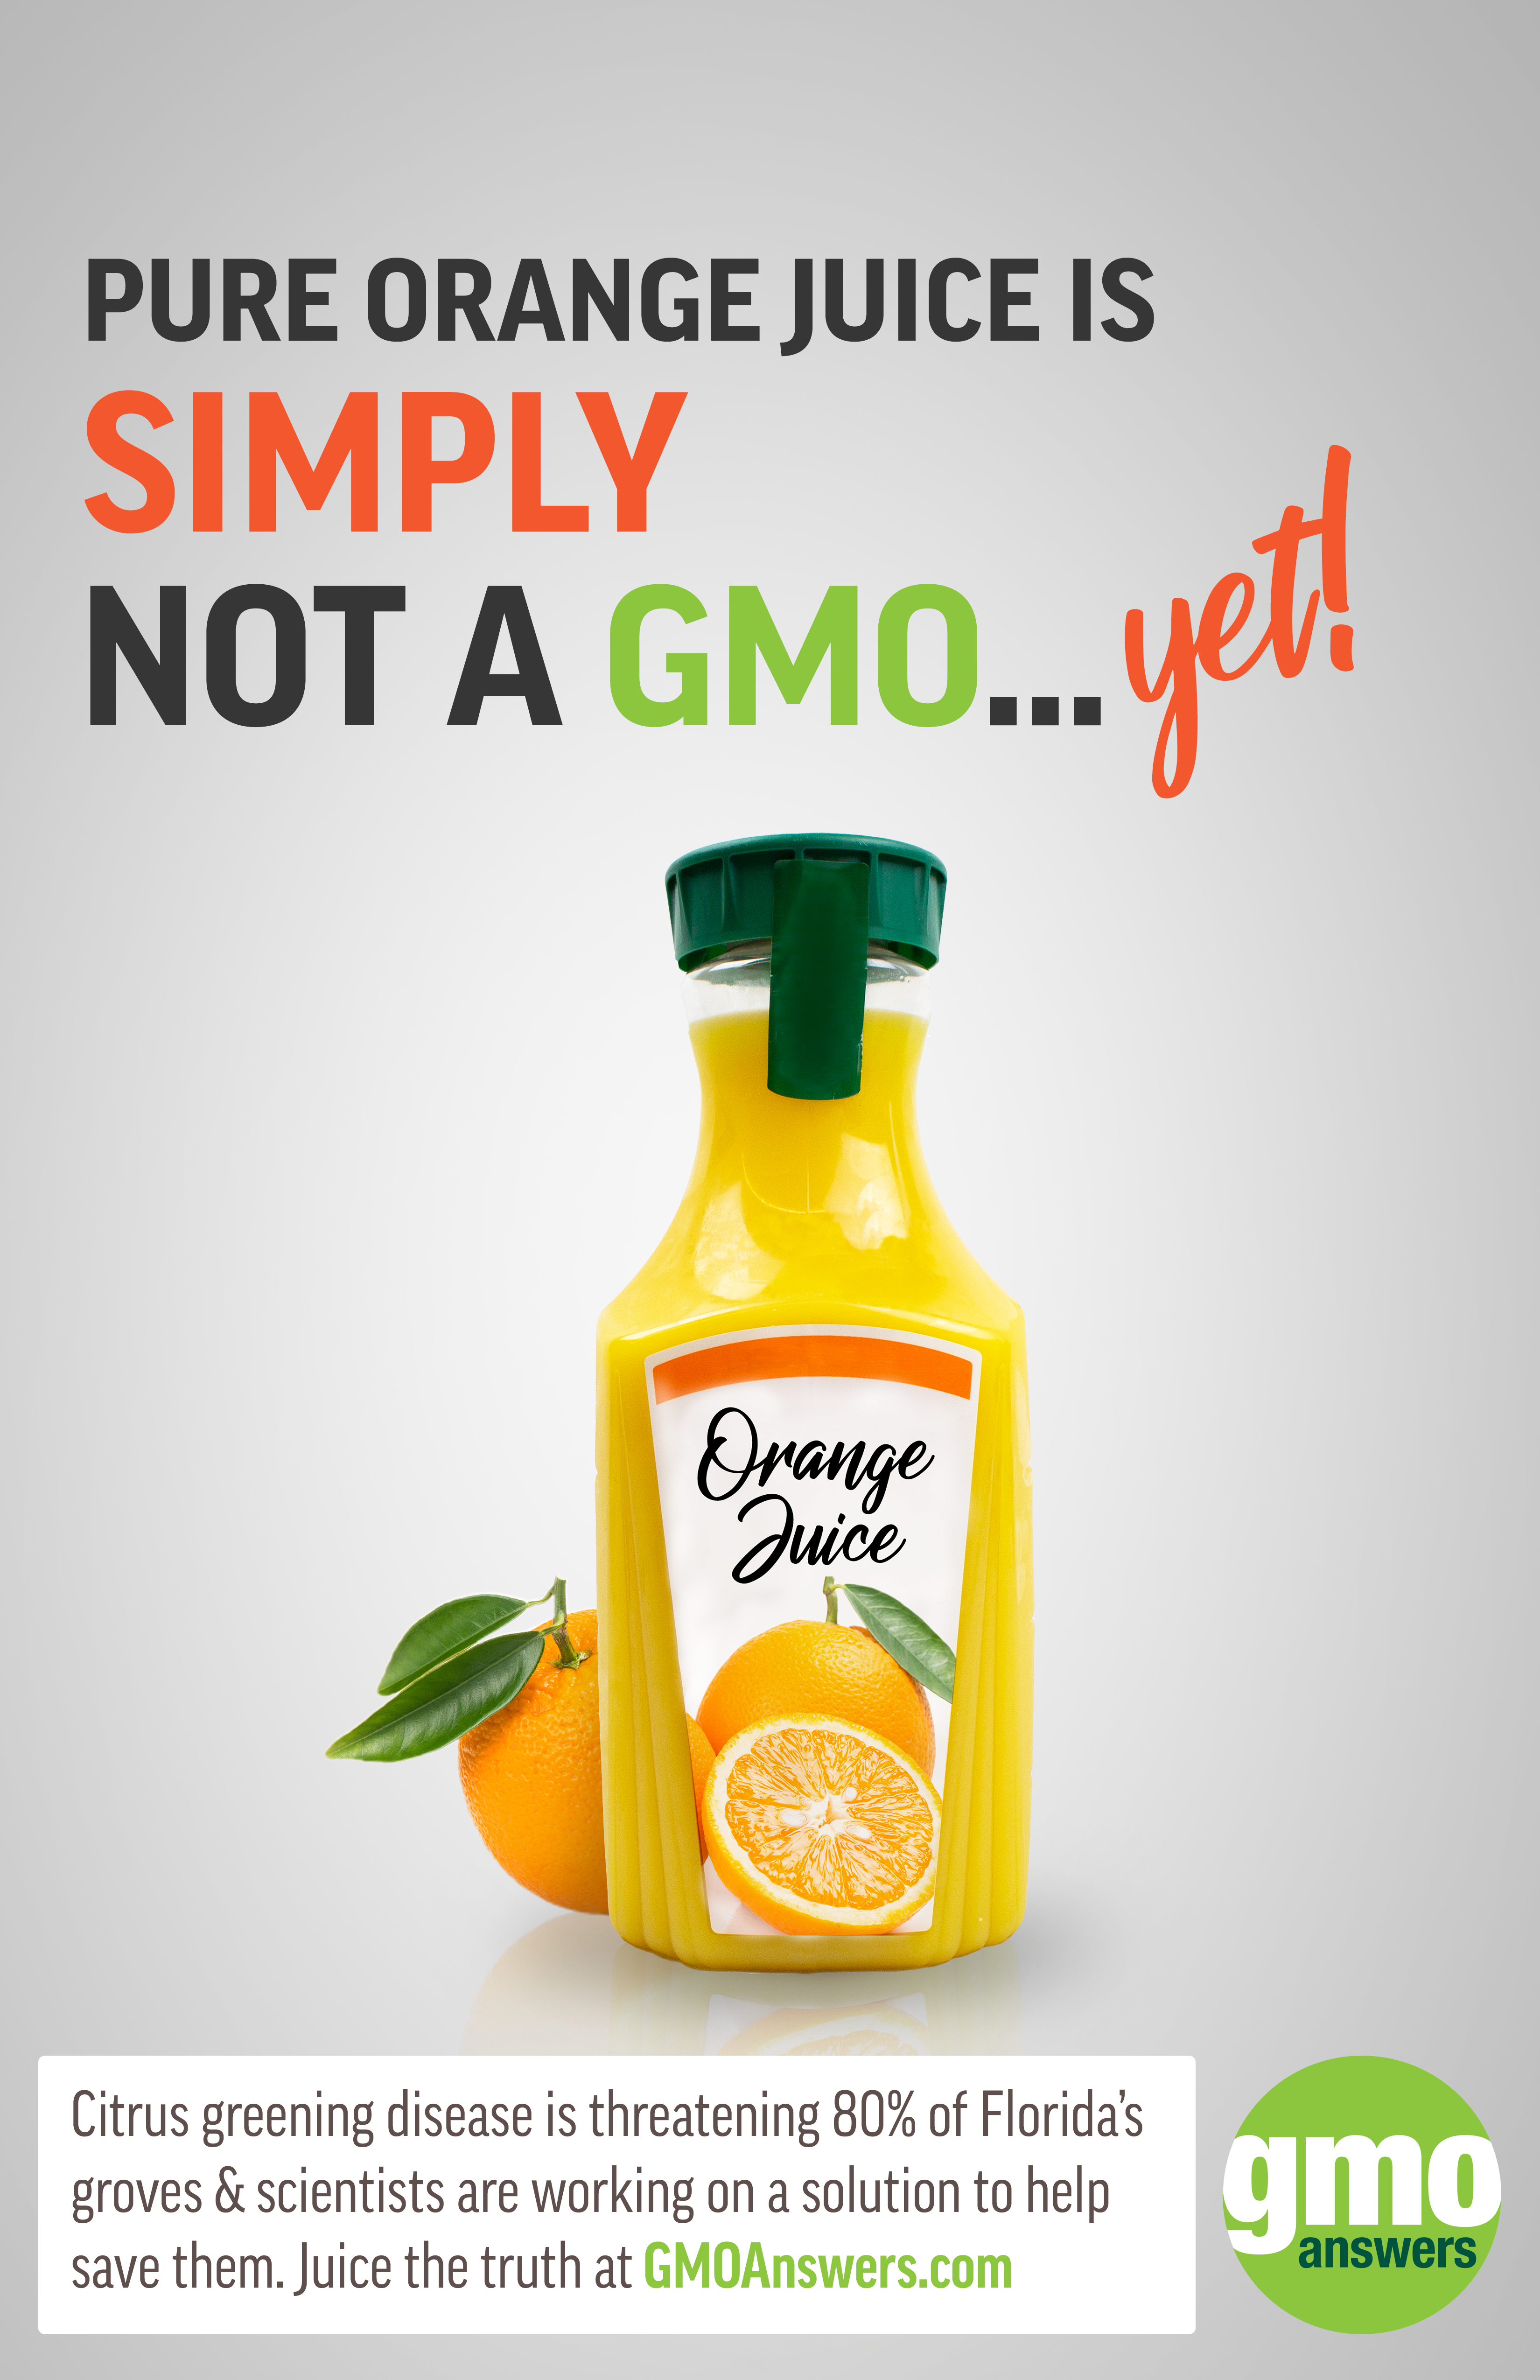 SOCIAL TILE: GMO Orange Juice Mythbuster